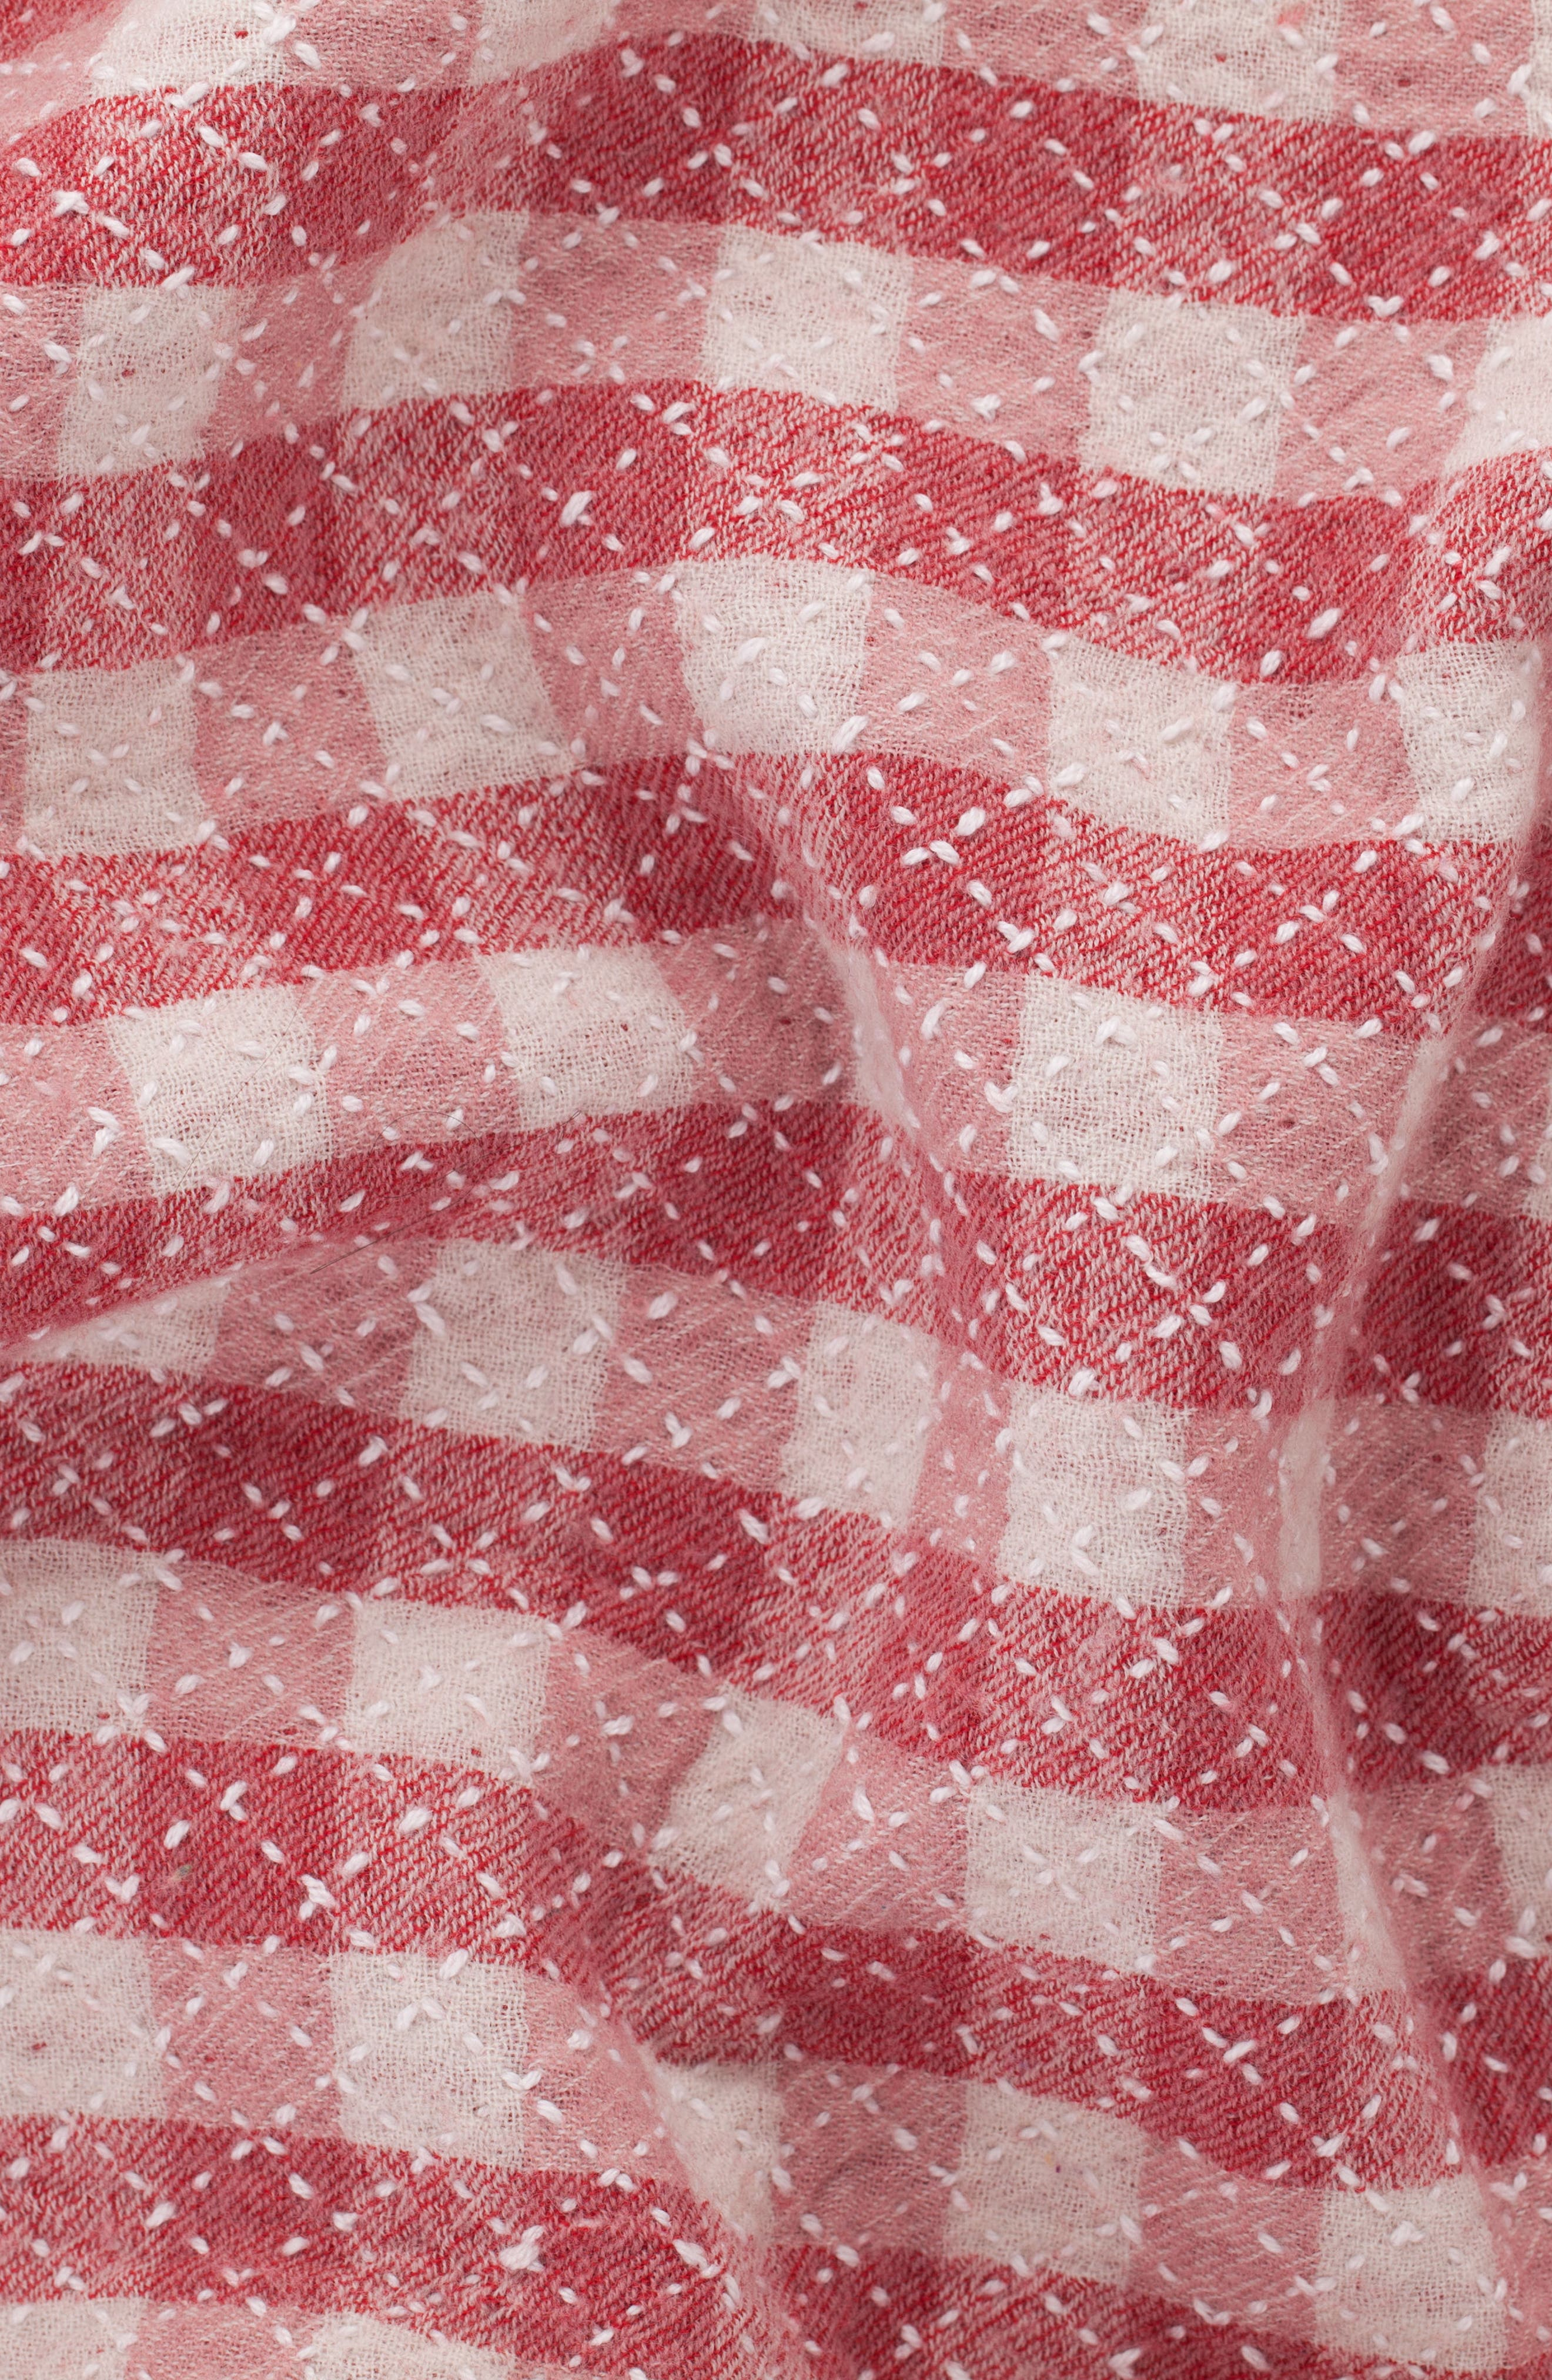 Reversible Hand Embroidered Merino Wool Blanket,                             Alternate thumbnail 3, color,                             RED